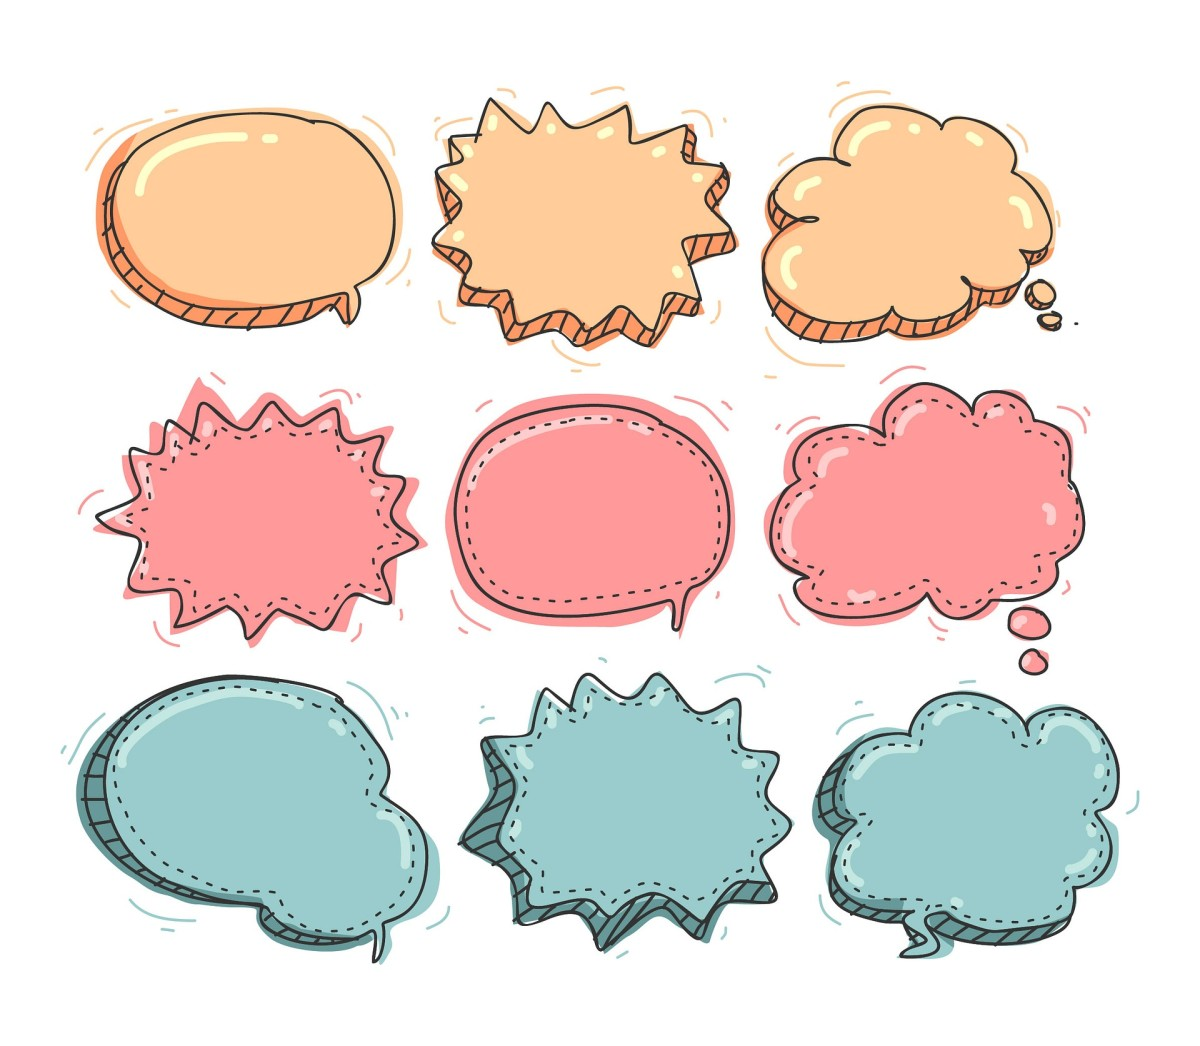 10 Tips to Write Great Dialogue